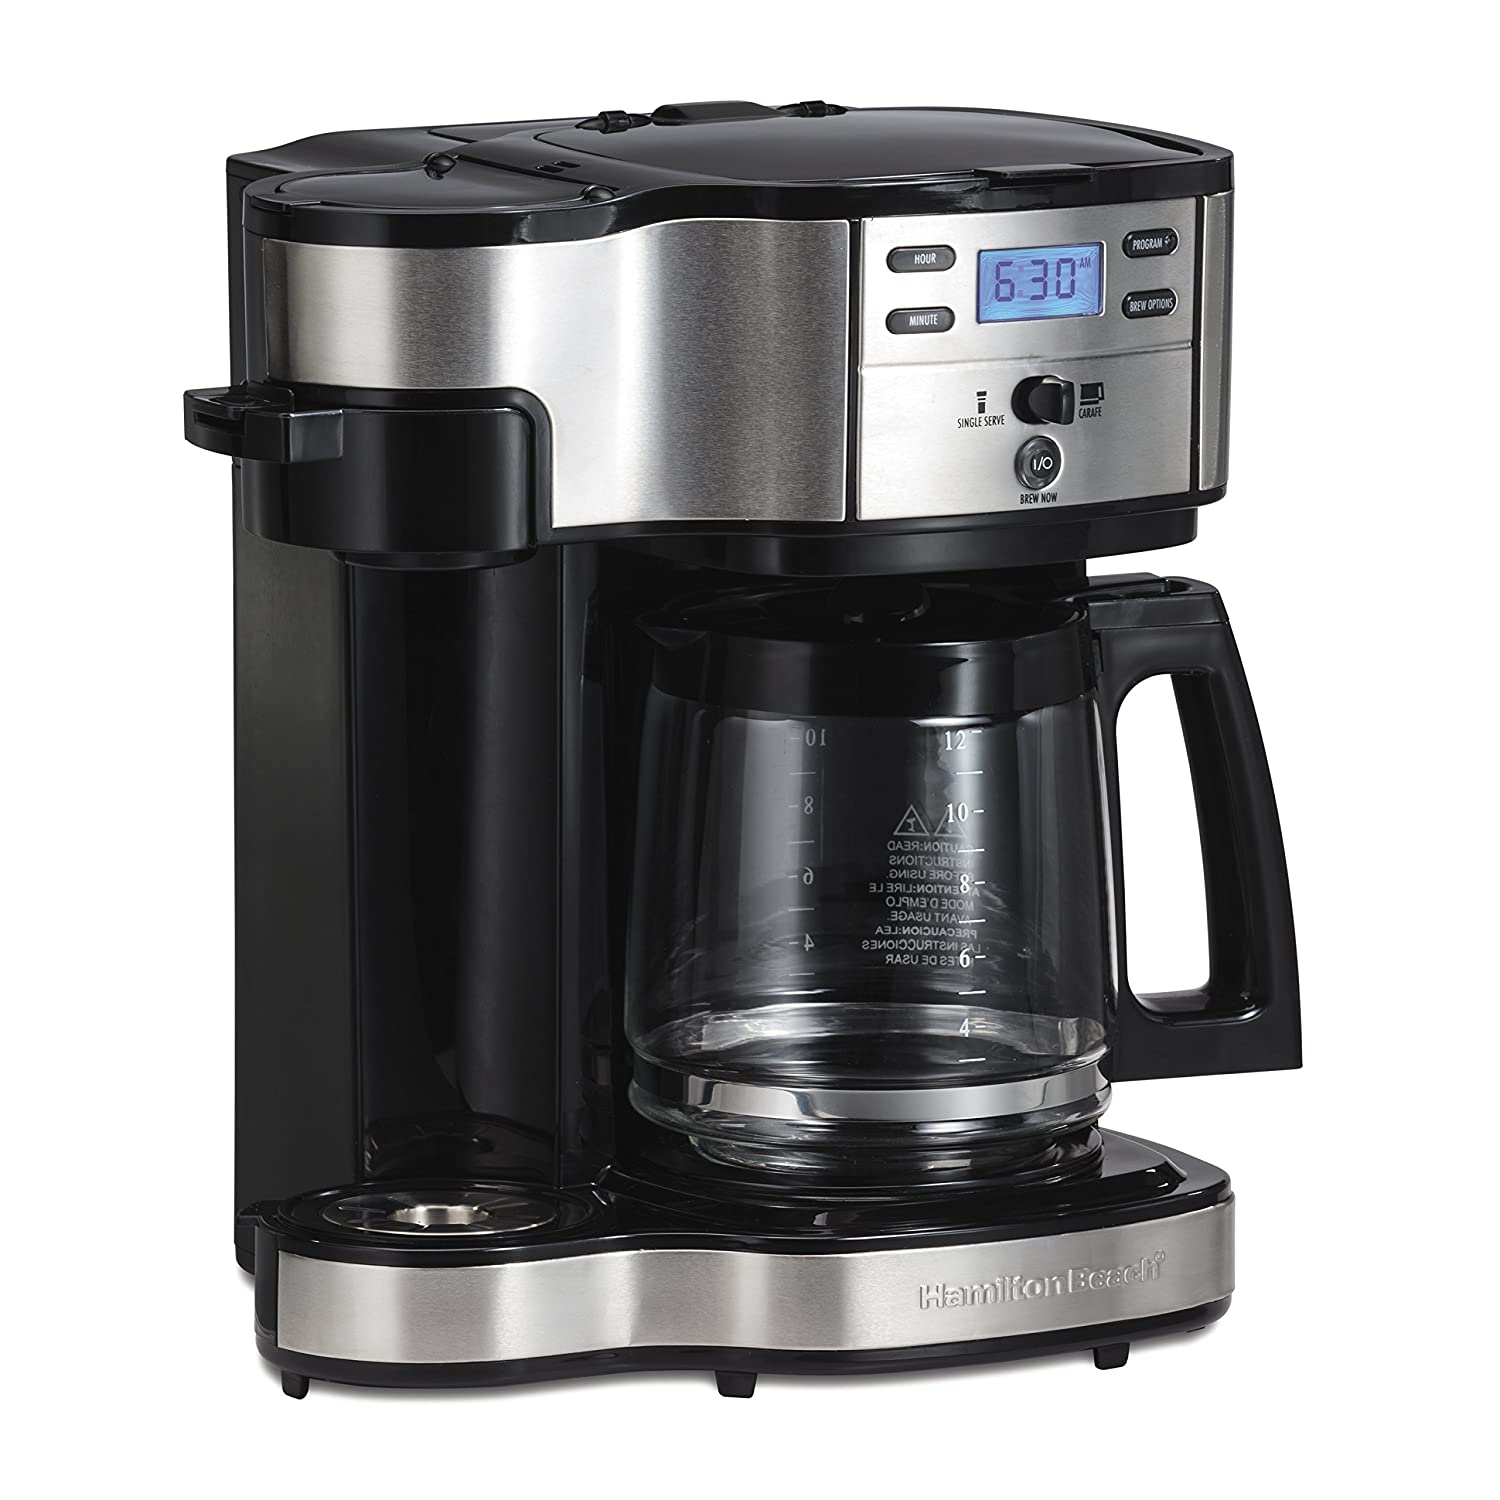 Amazoncom Hamilton Beach 49980a Coffee Maker Single Serve Black